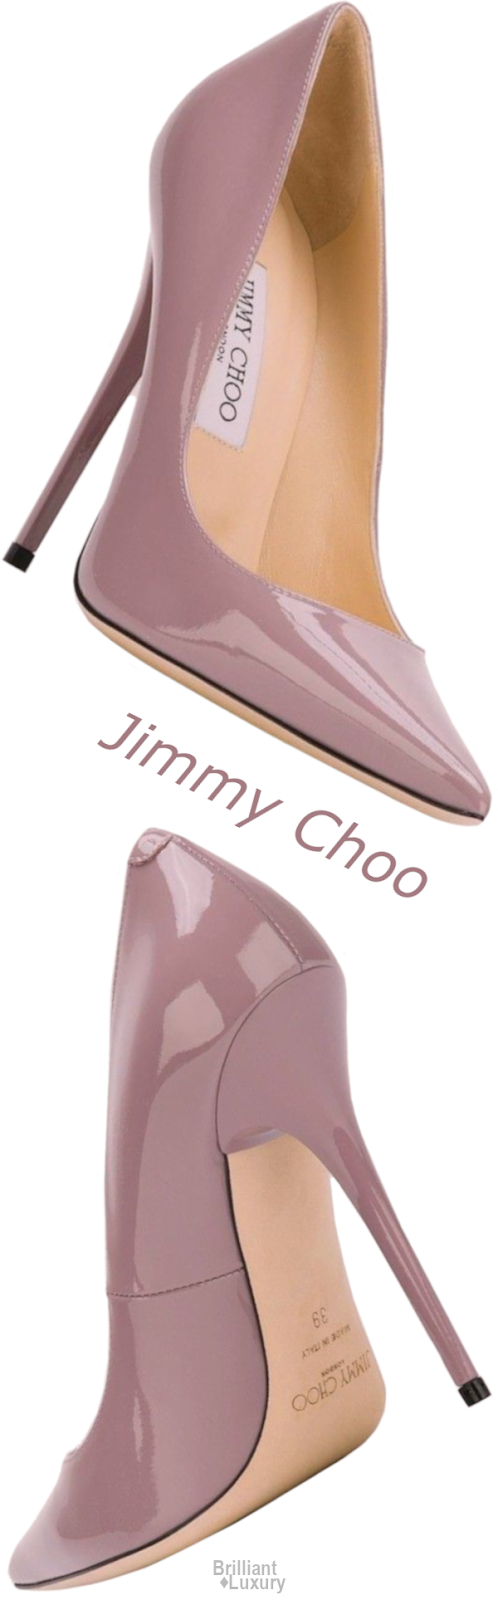 Brilliant Luxury♦Jimmy Choo Pumps #mauve